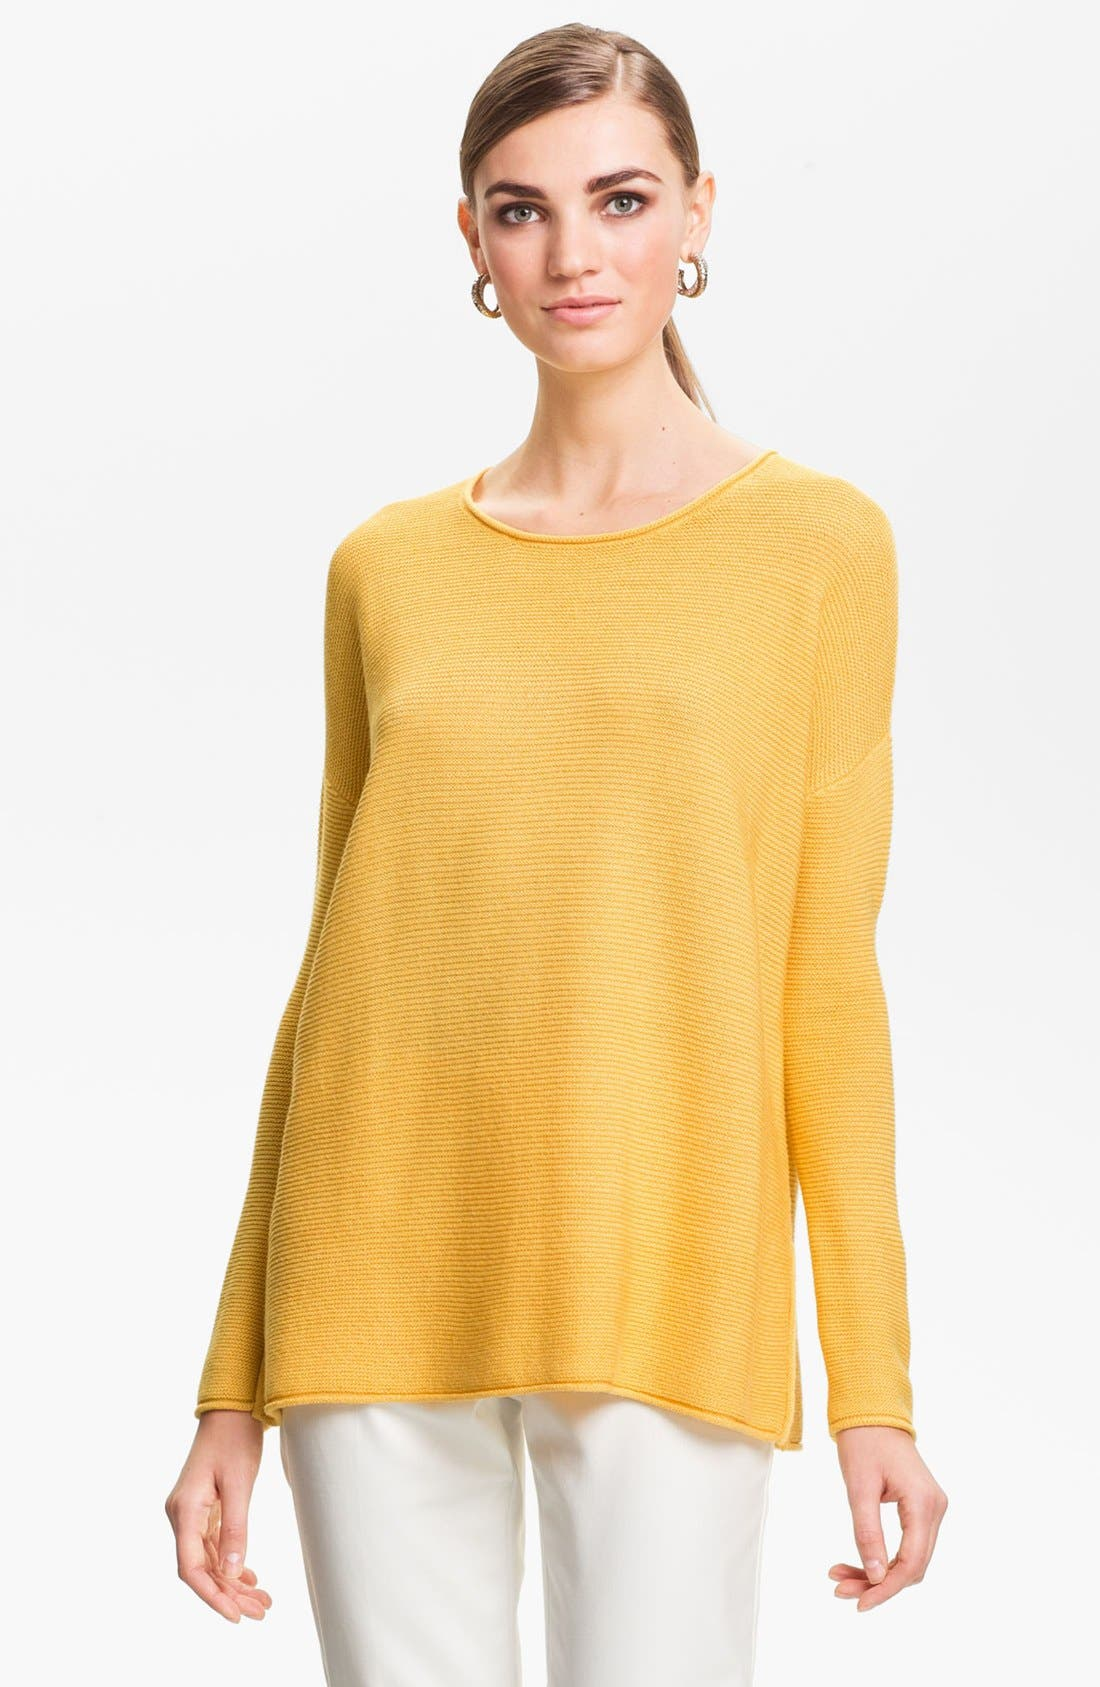 Alternate Image 1 Selected - St. John Yellow Label Ottoman Knit Sweater